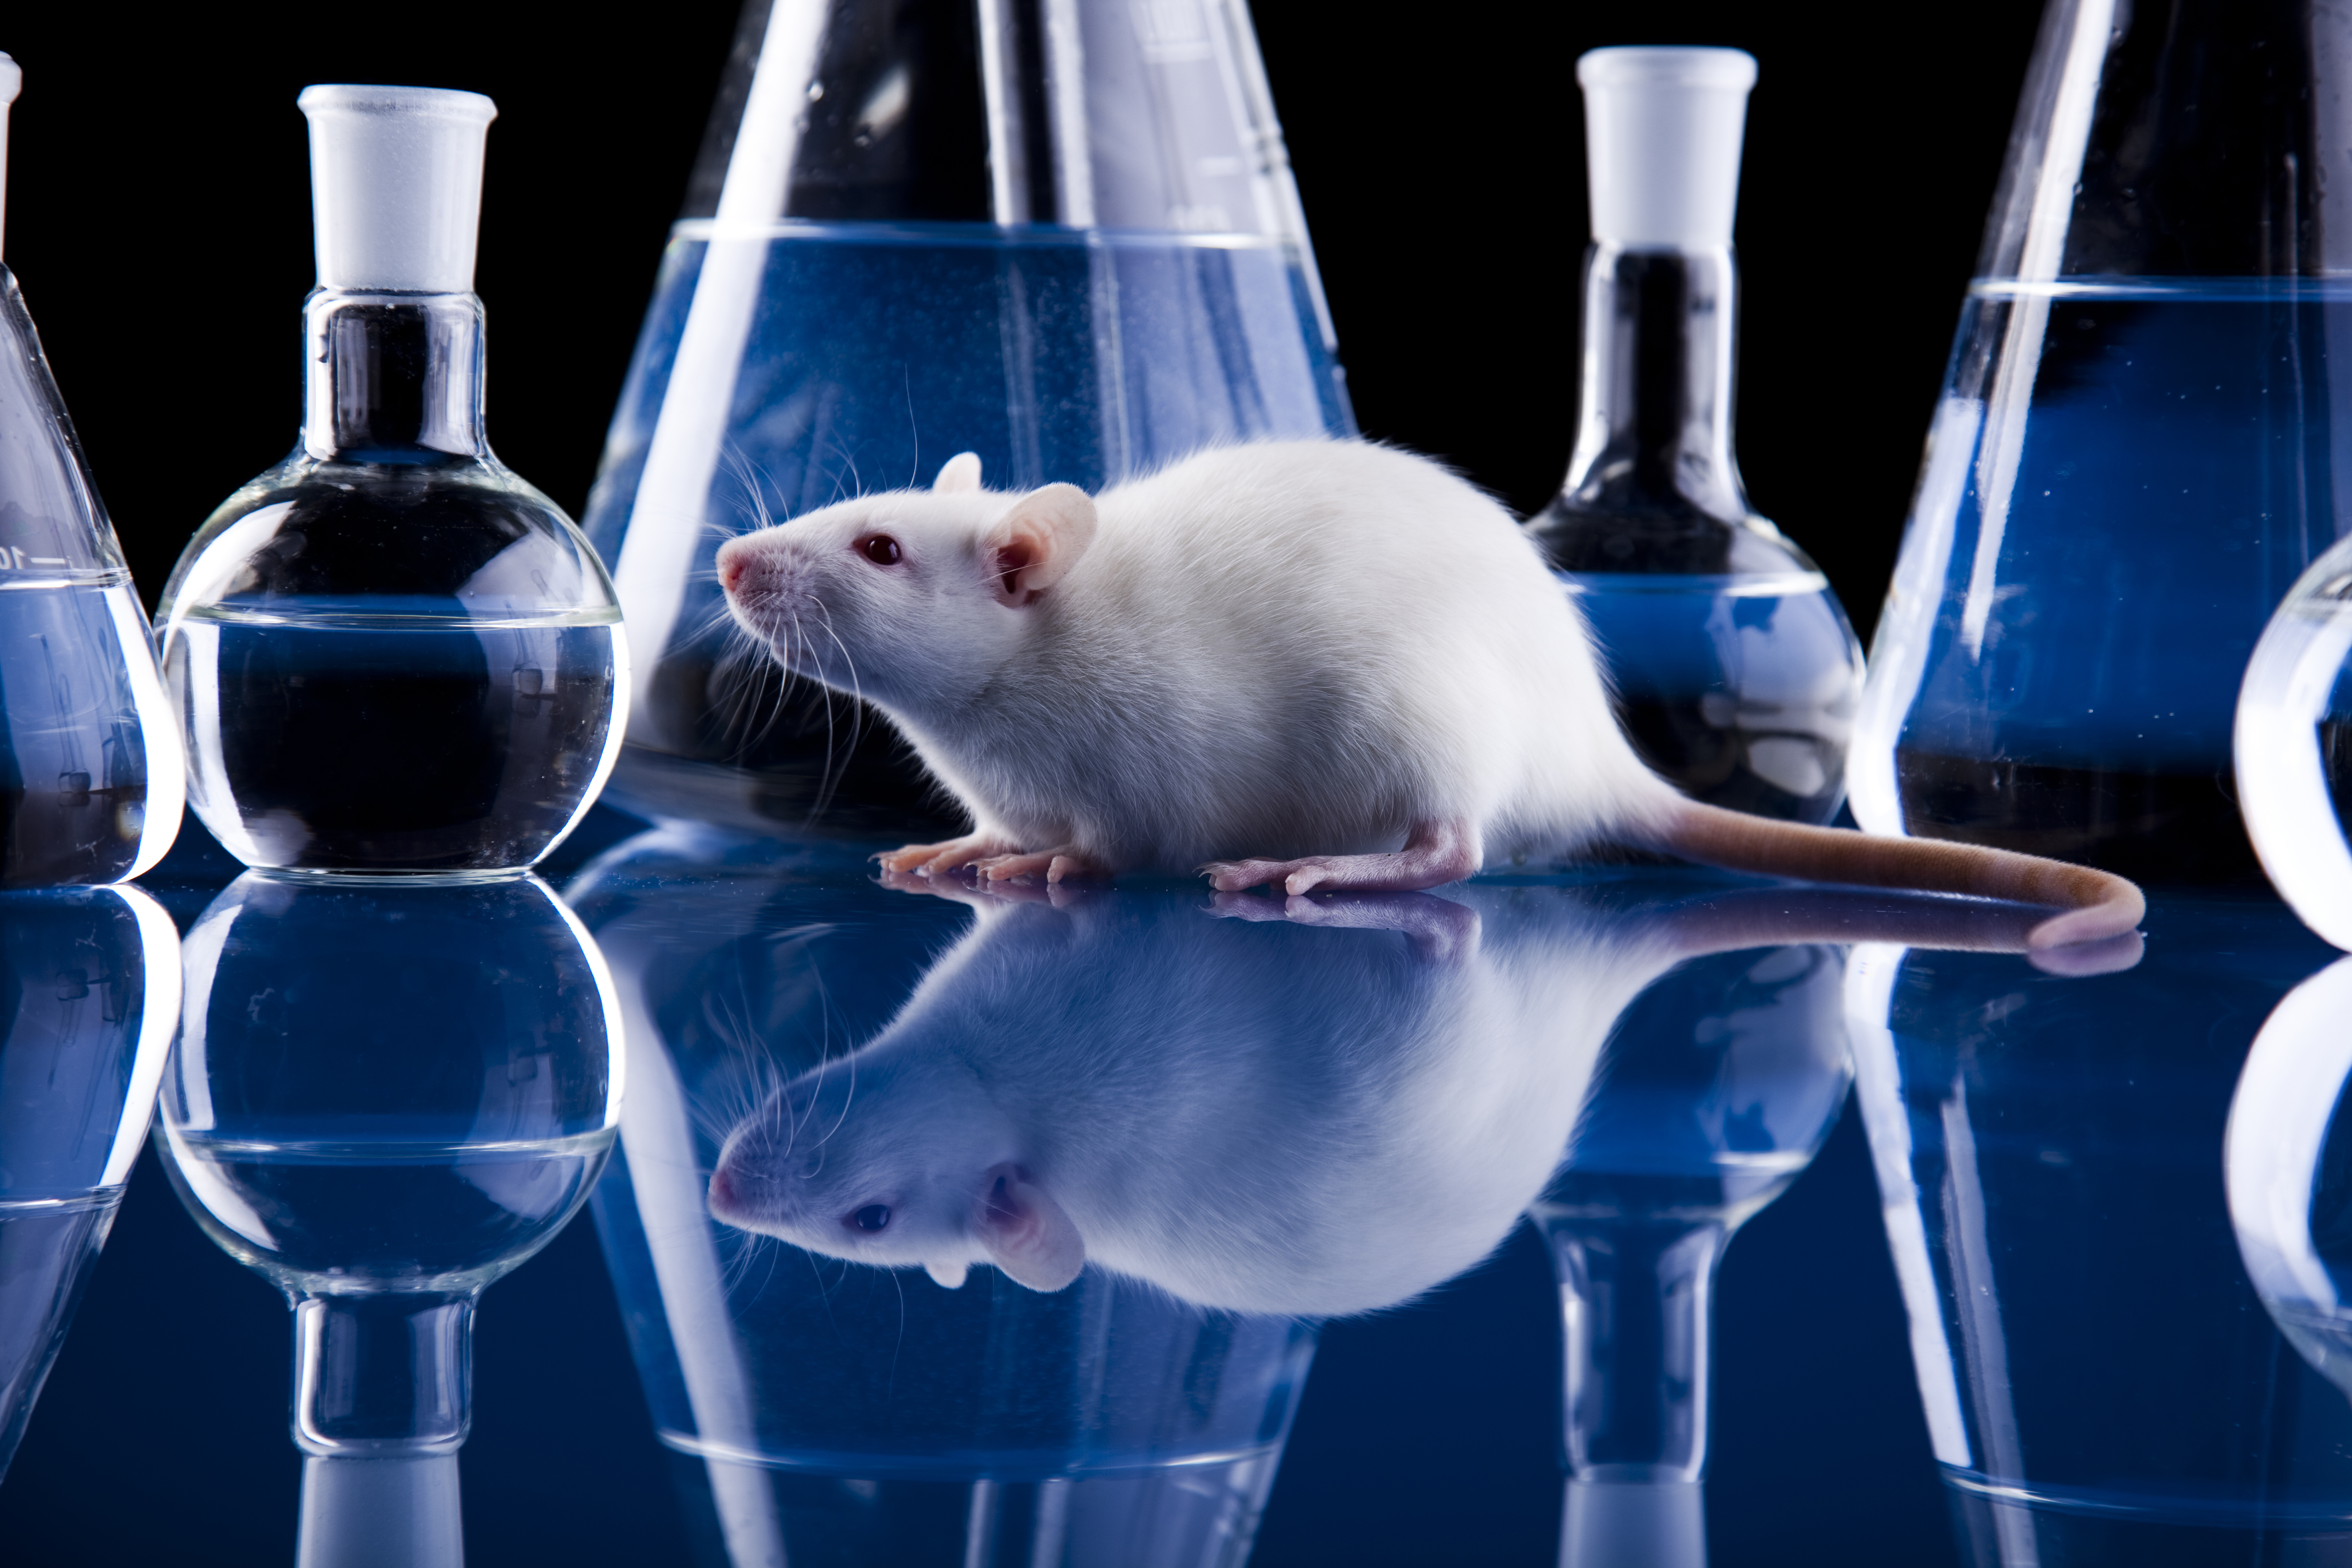 animal experimentation a necessity Questions about the morality, necessity and scientific validity of animal  experiments have arisen since those ancient physicians first began to study  bodily.